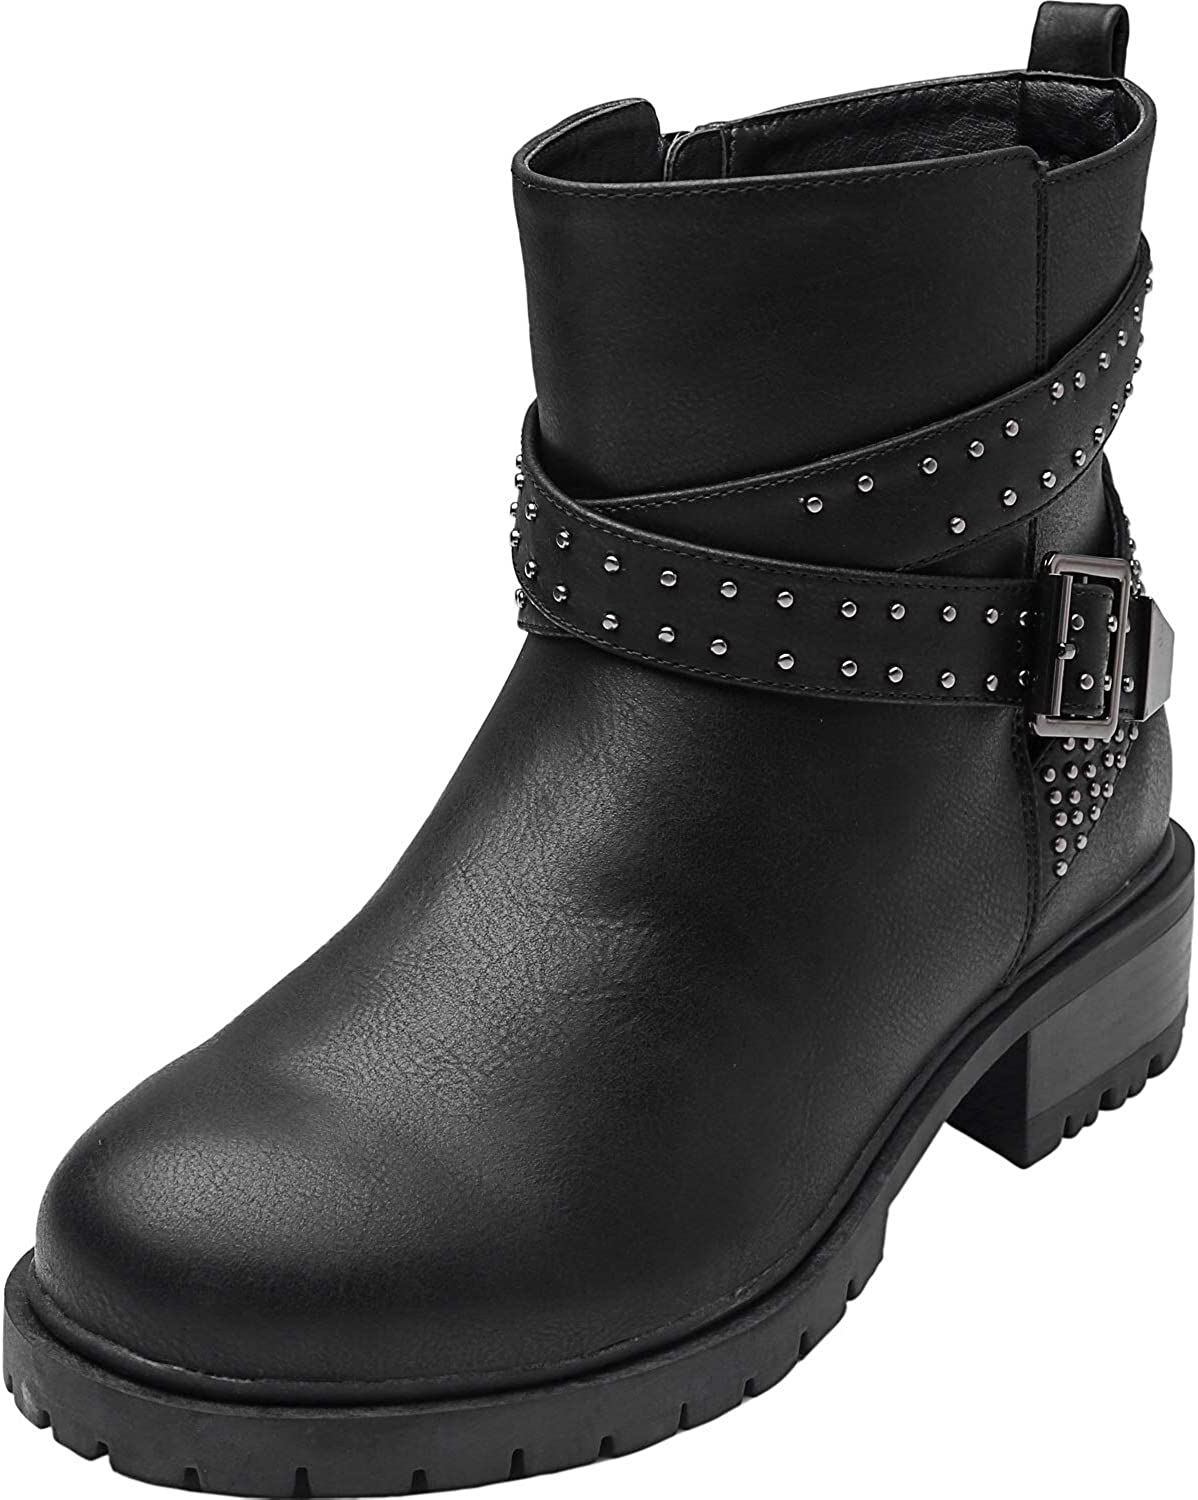 Luoika Womens Wide Width Ankle Boots Mid Chunky Block Heels Round Toe Slip on Side Zipper Booties.